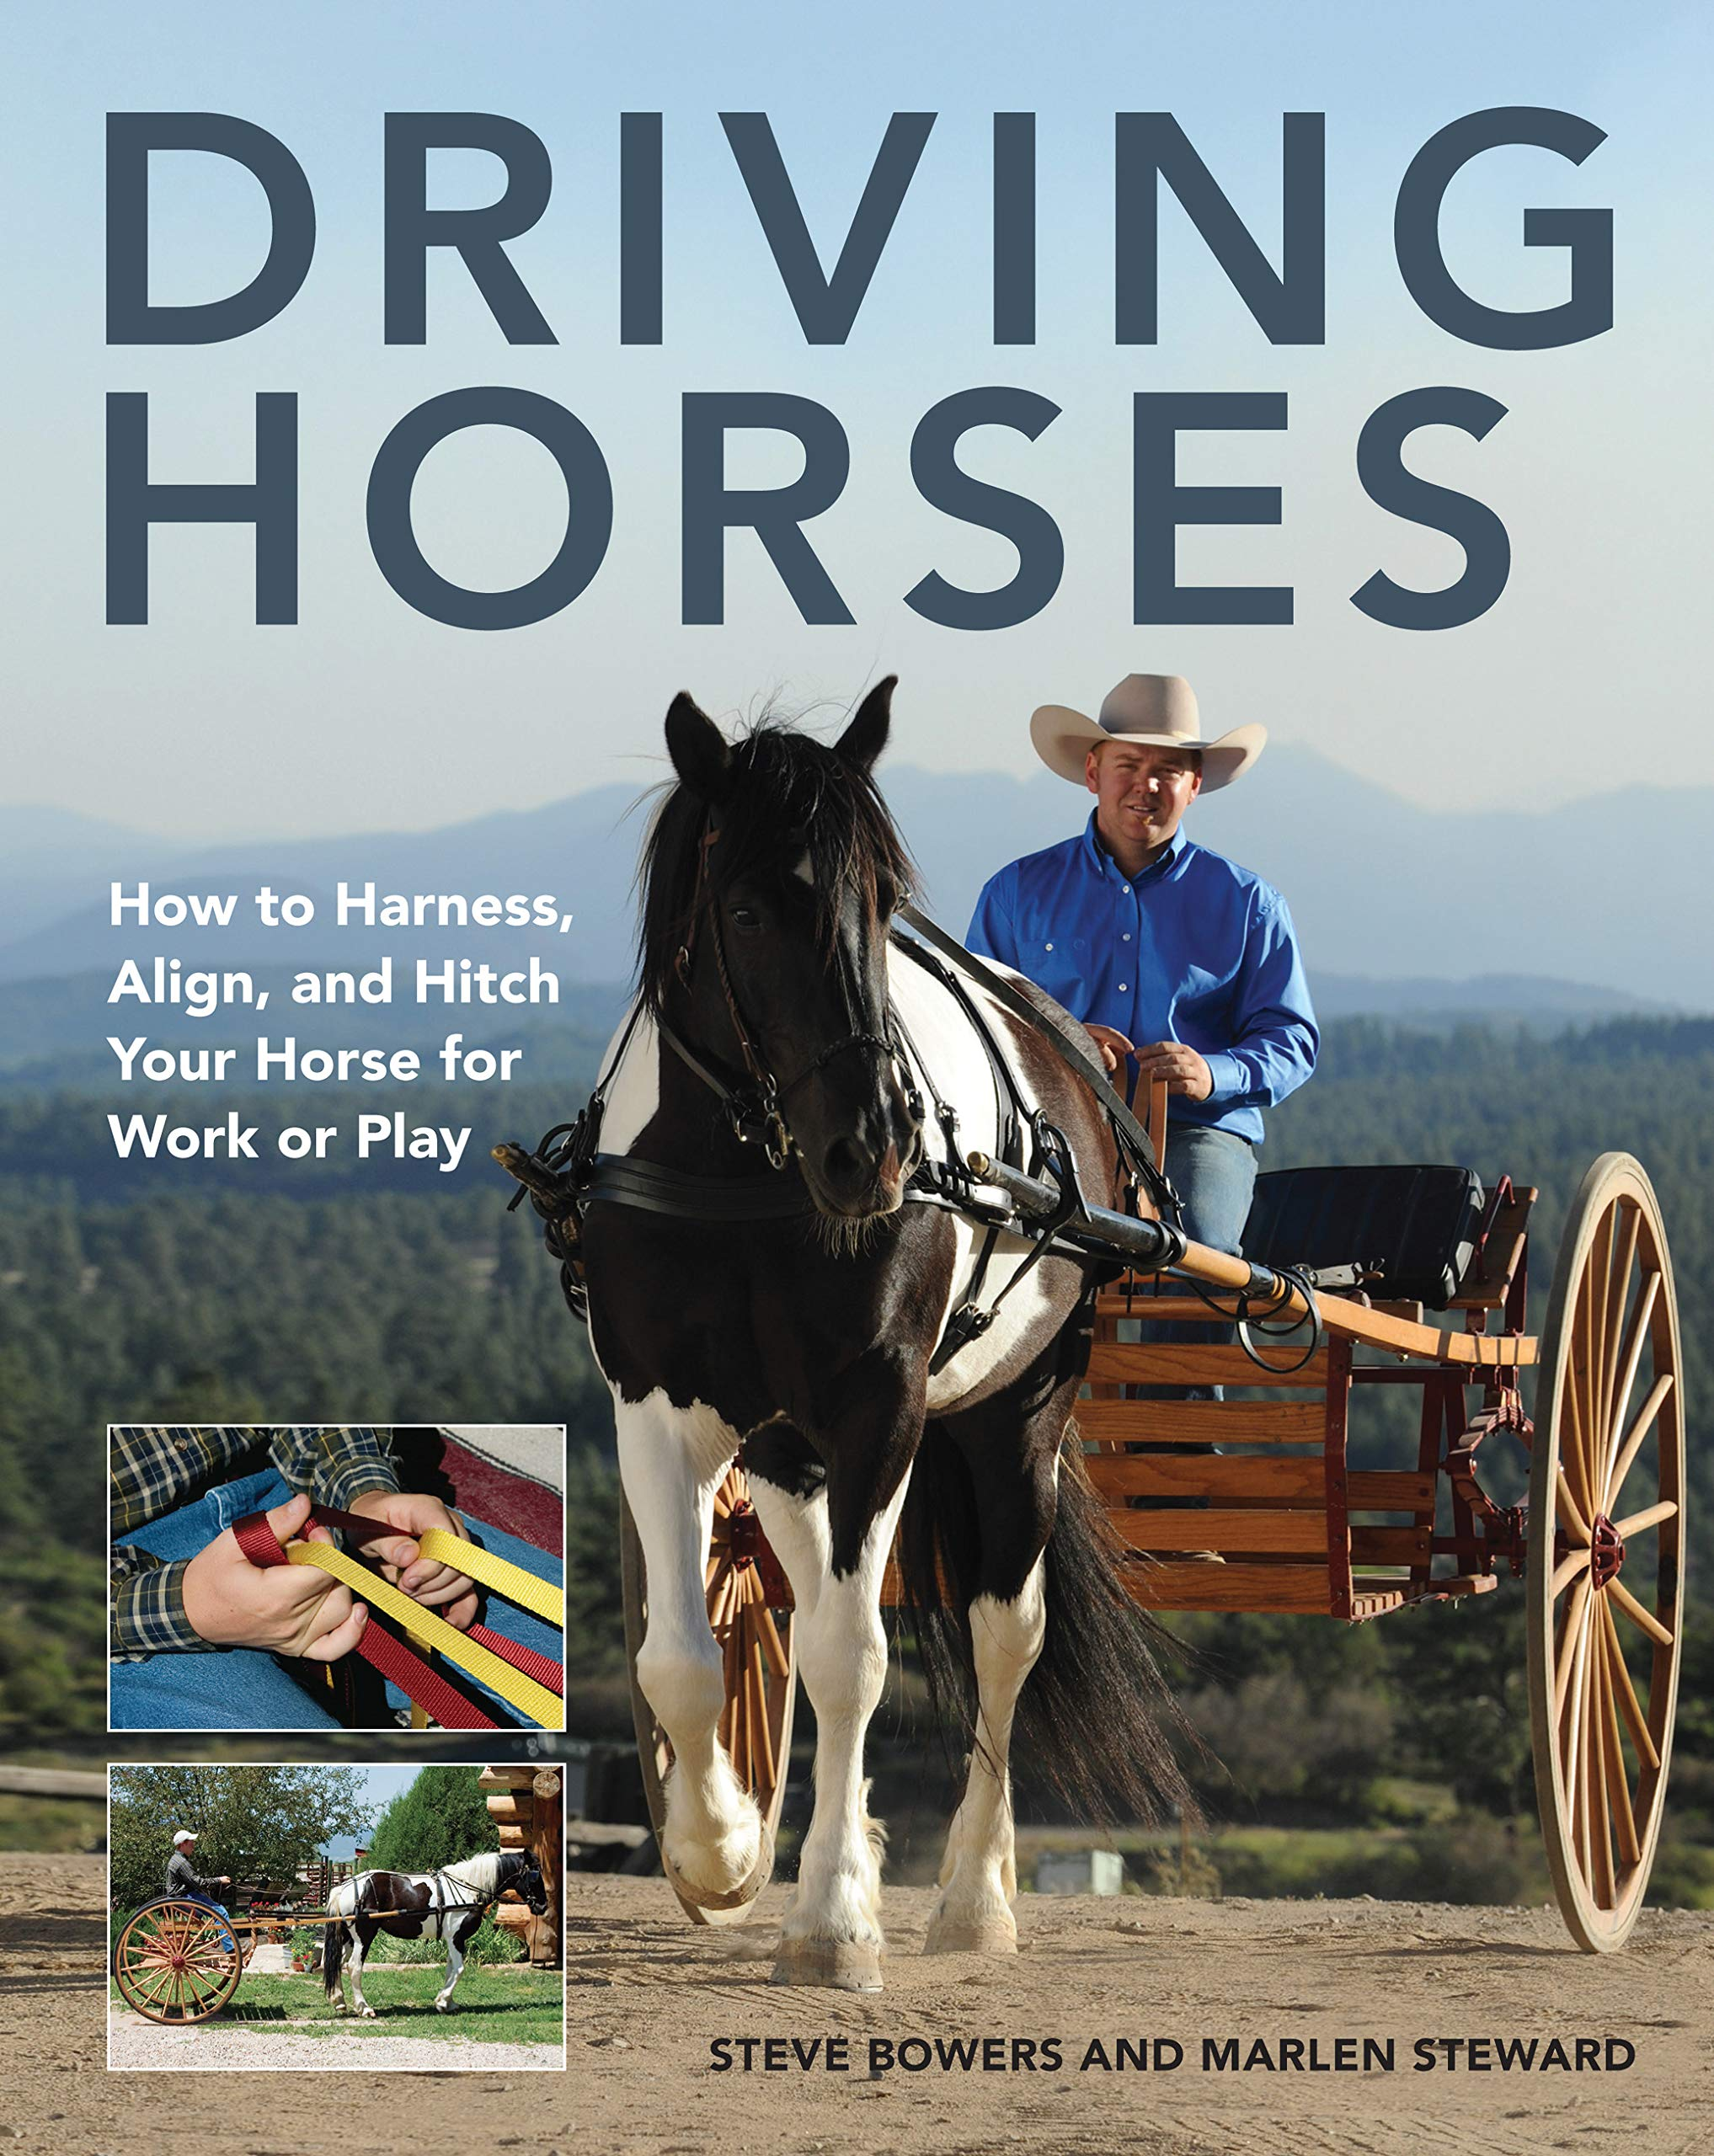 91O ZJAp0uL driving horses how to harness, align, and hitch your horse for work